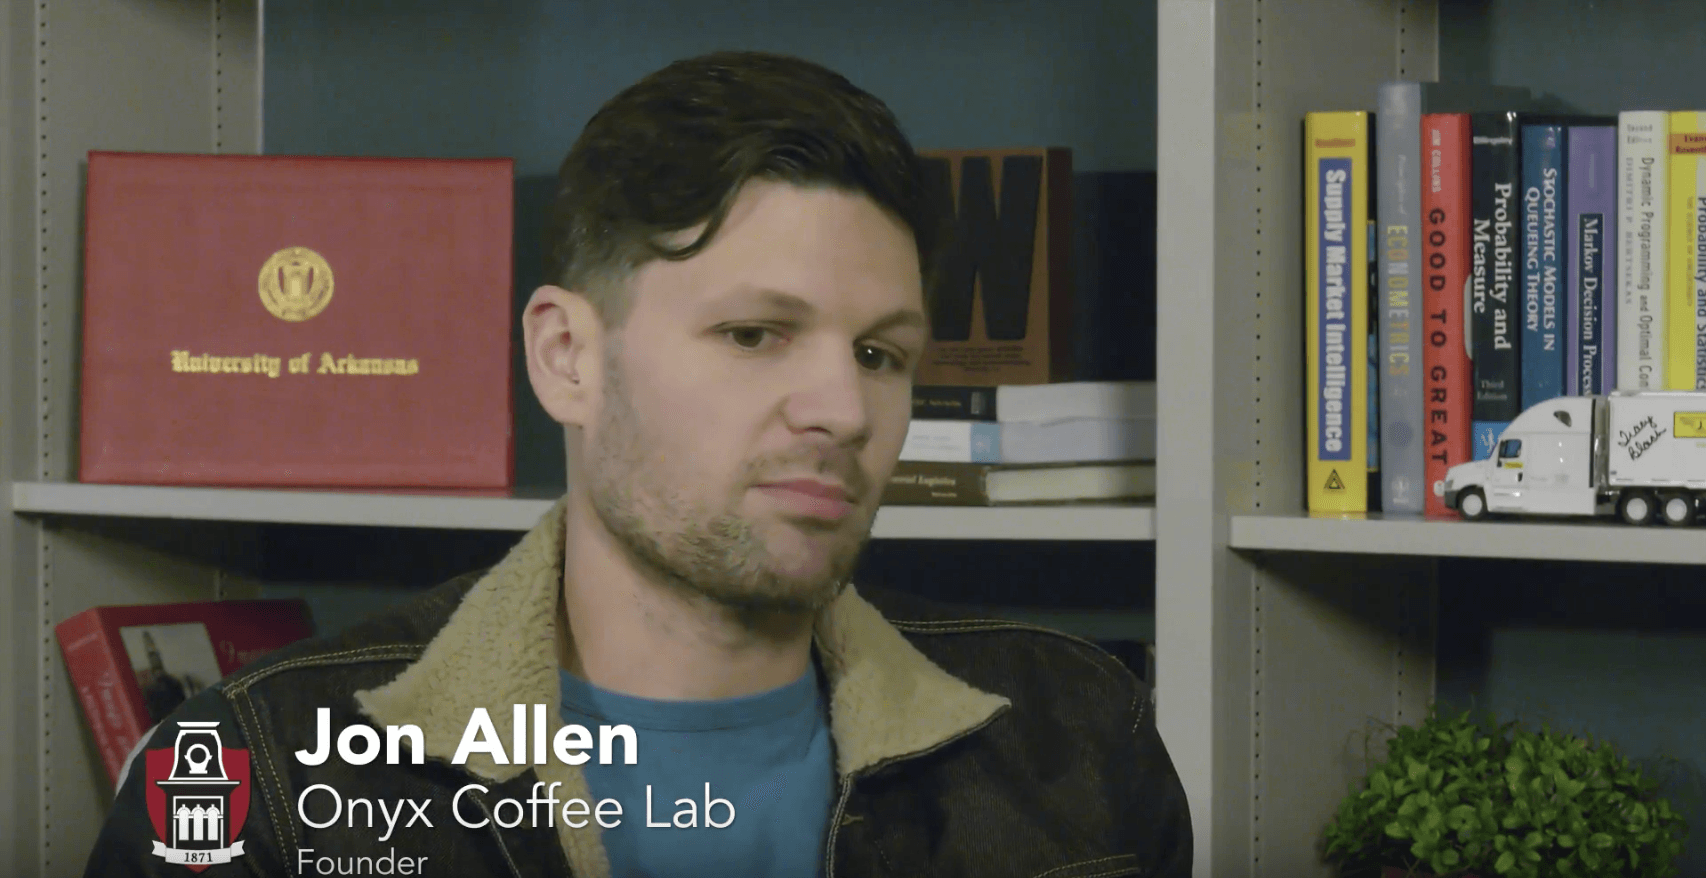 Jon Allen: Onyx Coffee Lab